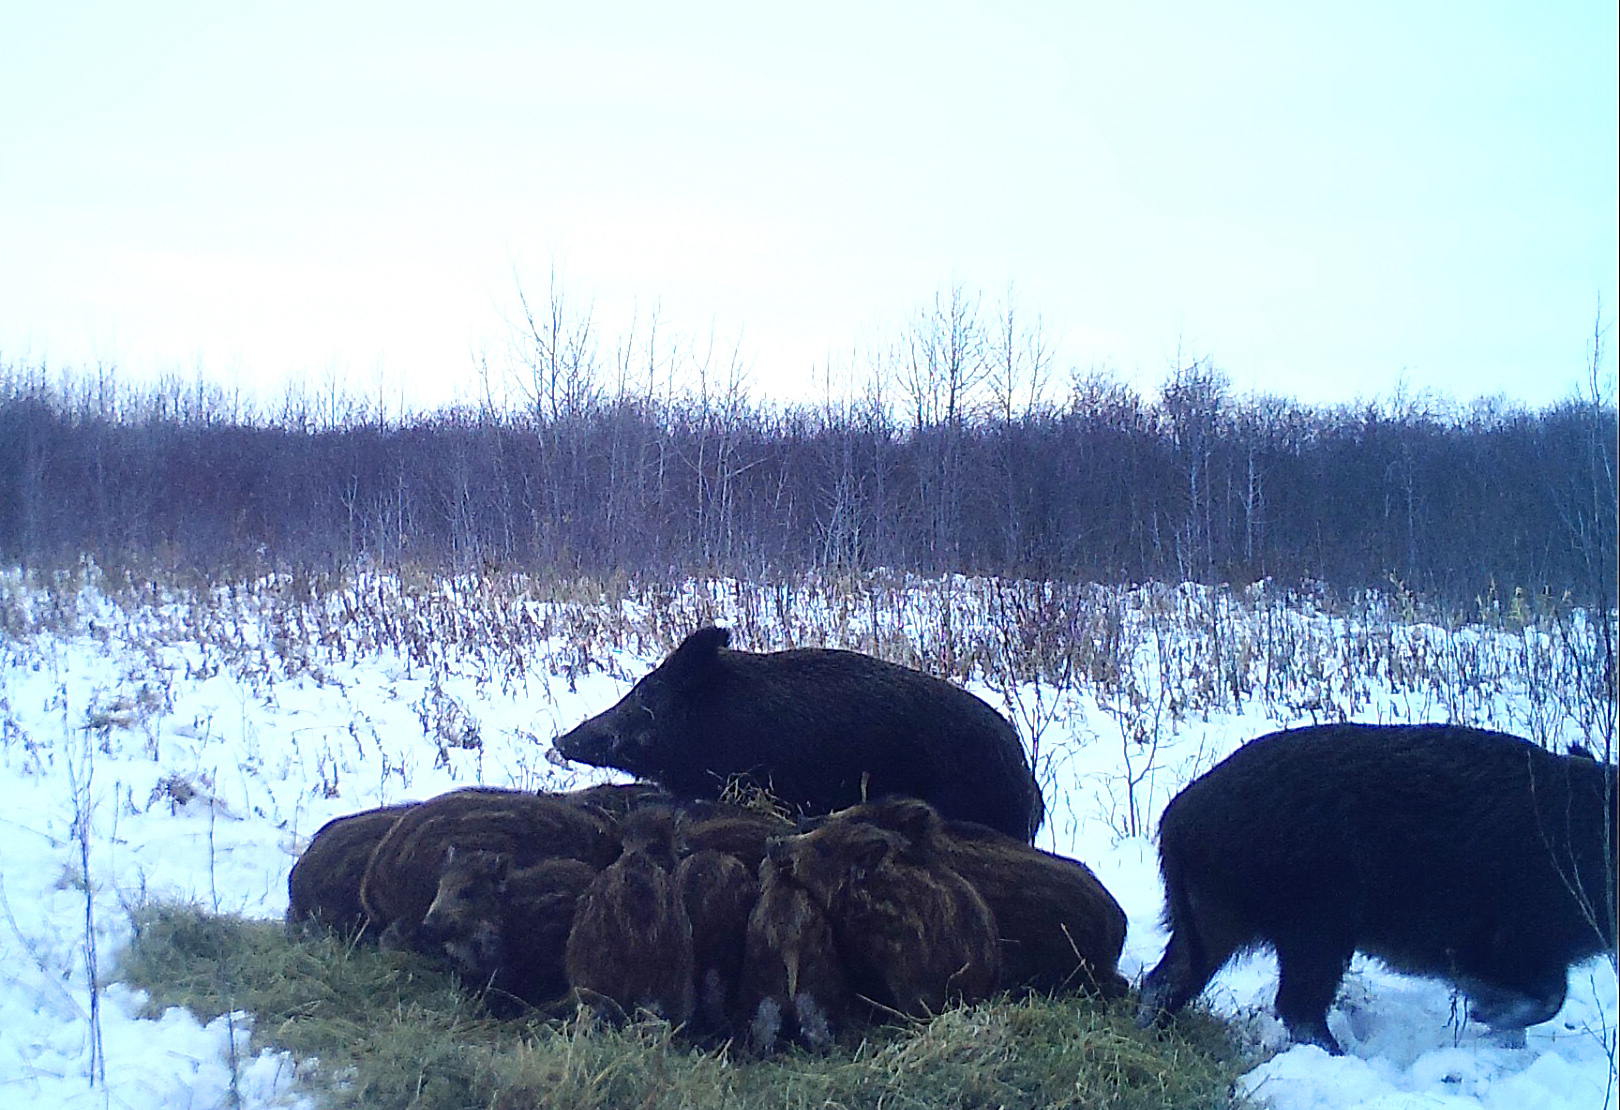 Wild pigs are shown at in this image provided by Ryan Brook at the University of Saskatchewan, taken using a wildlife camera.